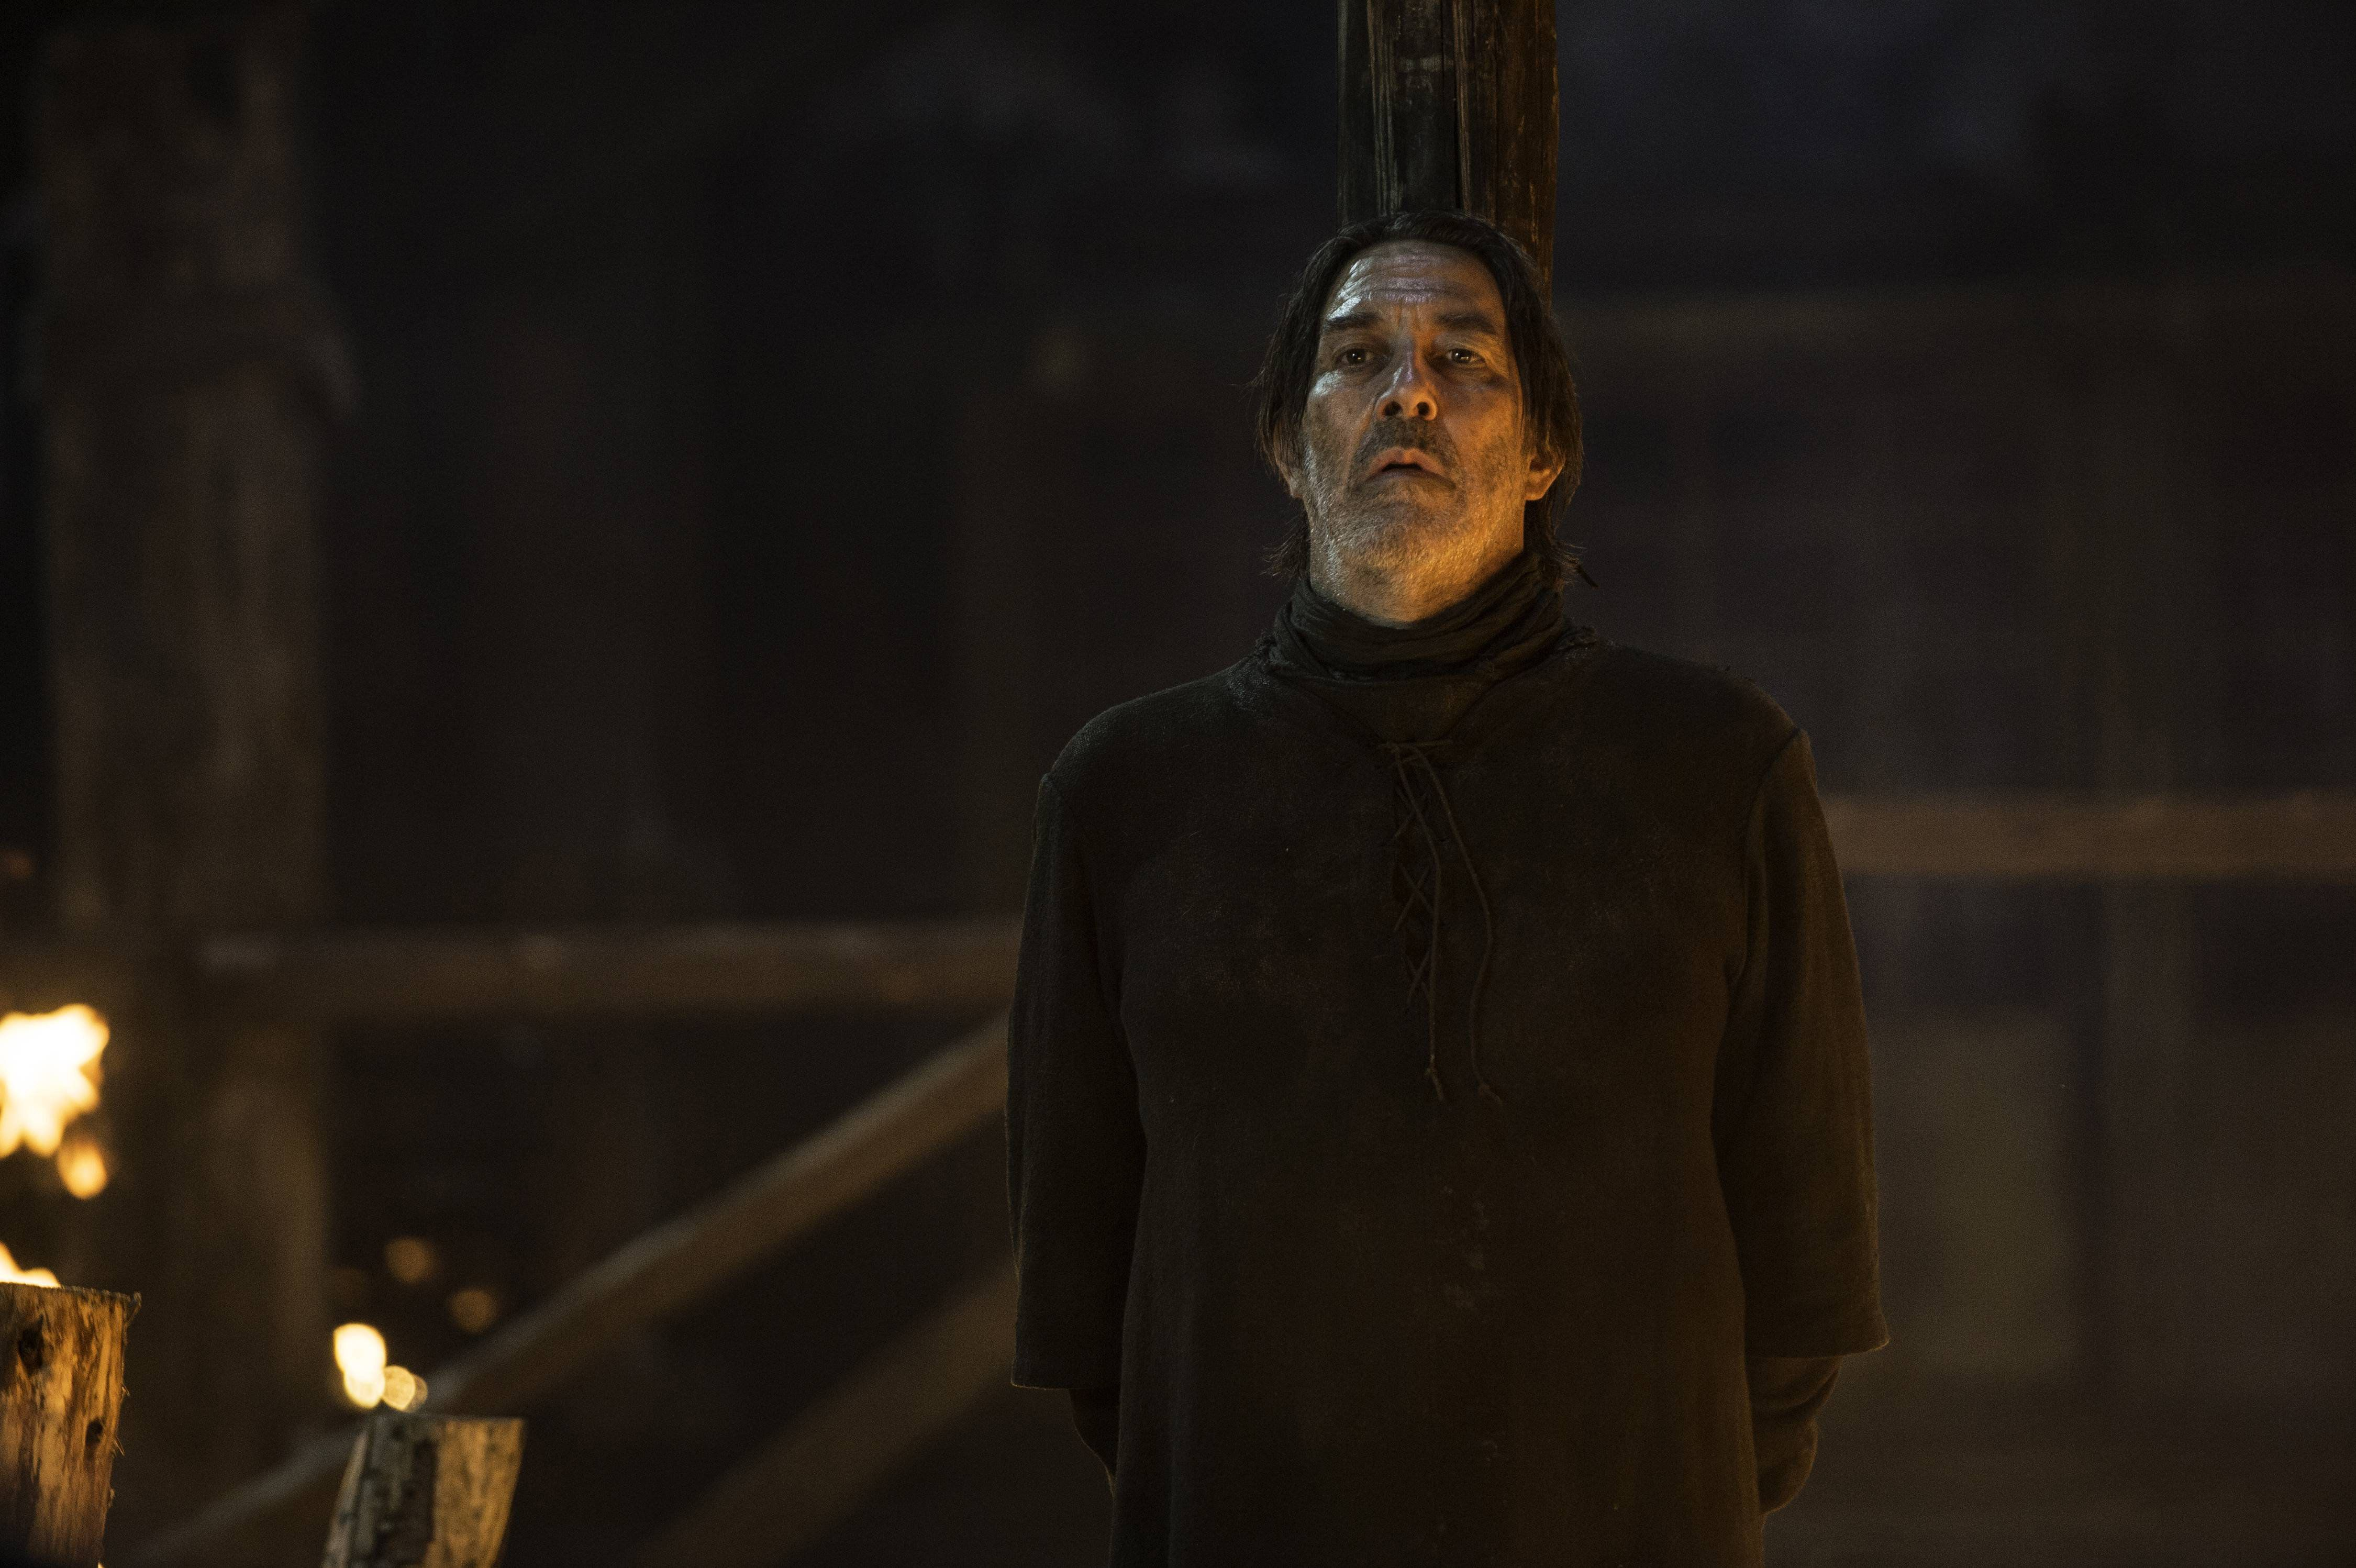 Did the Game Of Thrones director just reveal Jaime Lannister's fate?